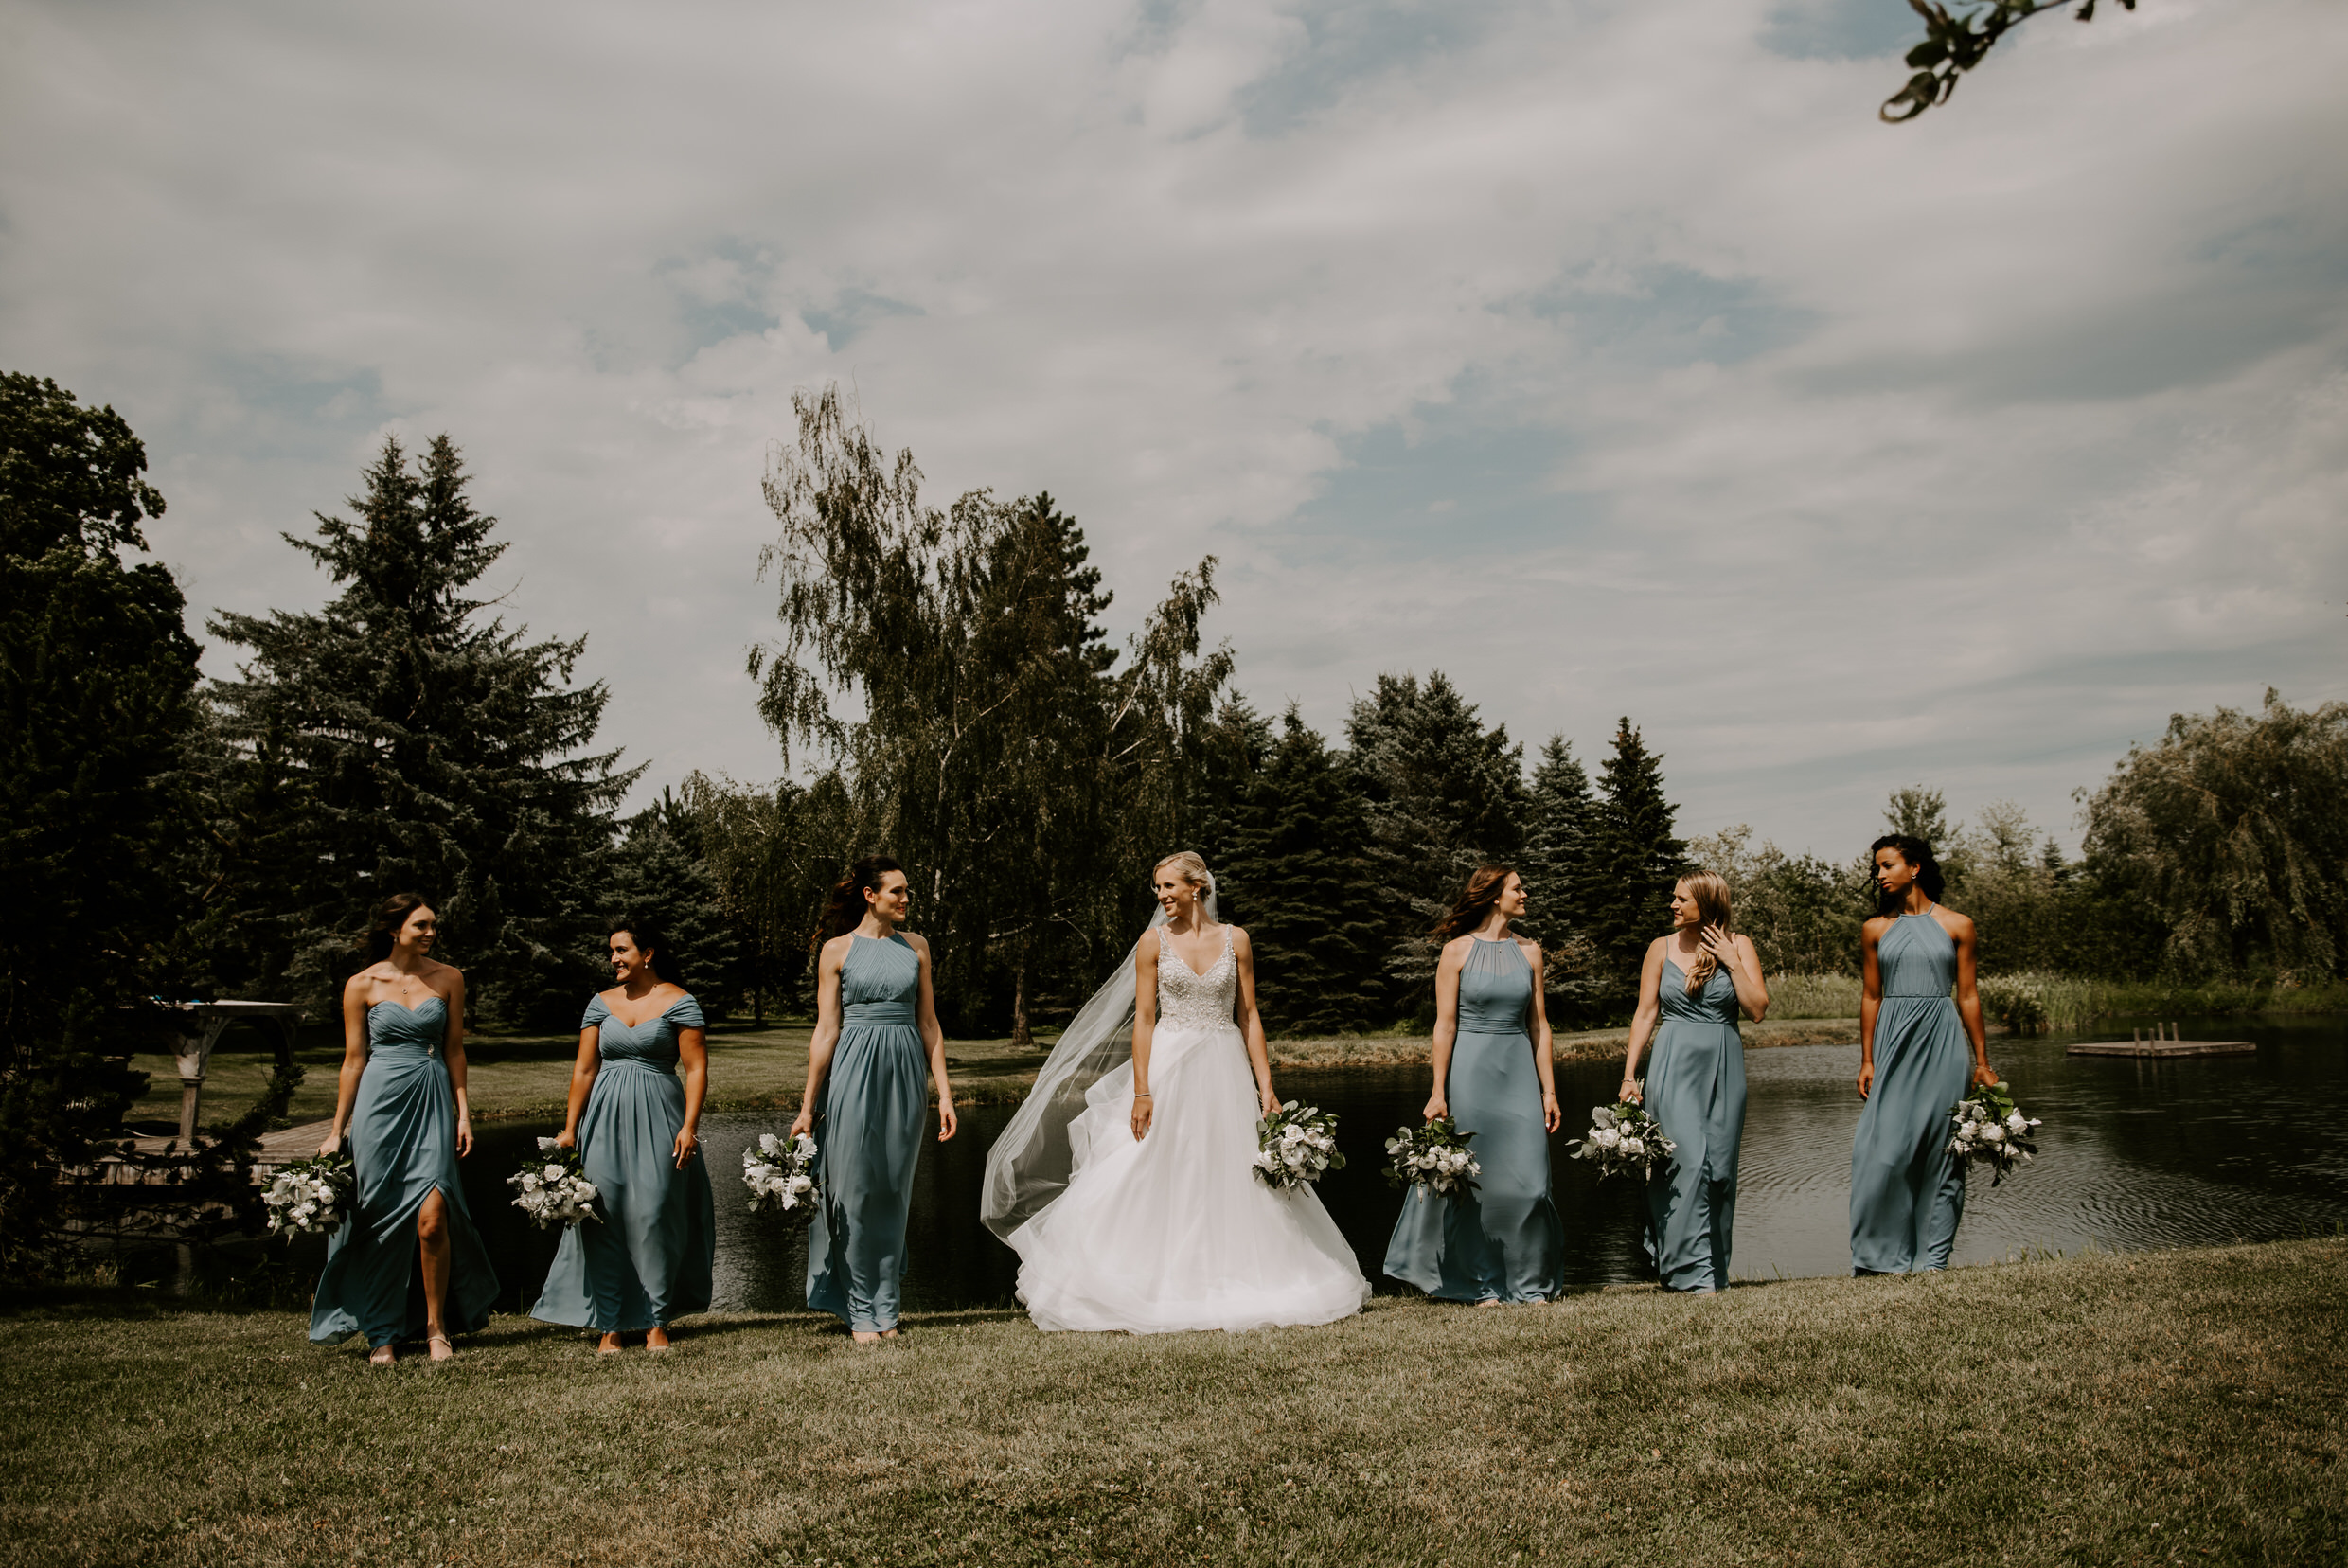 Belcroft Estates Wedding - bridal party portraits by the pond